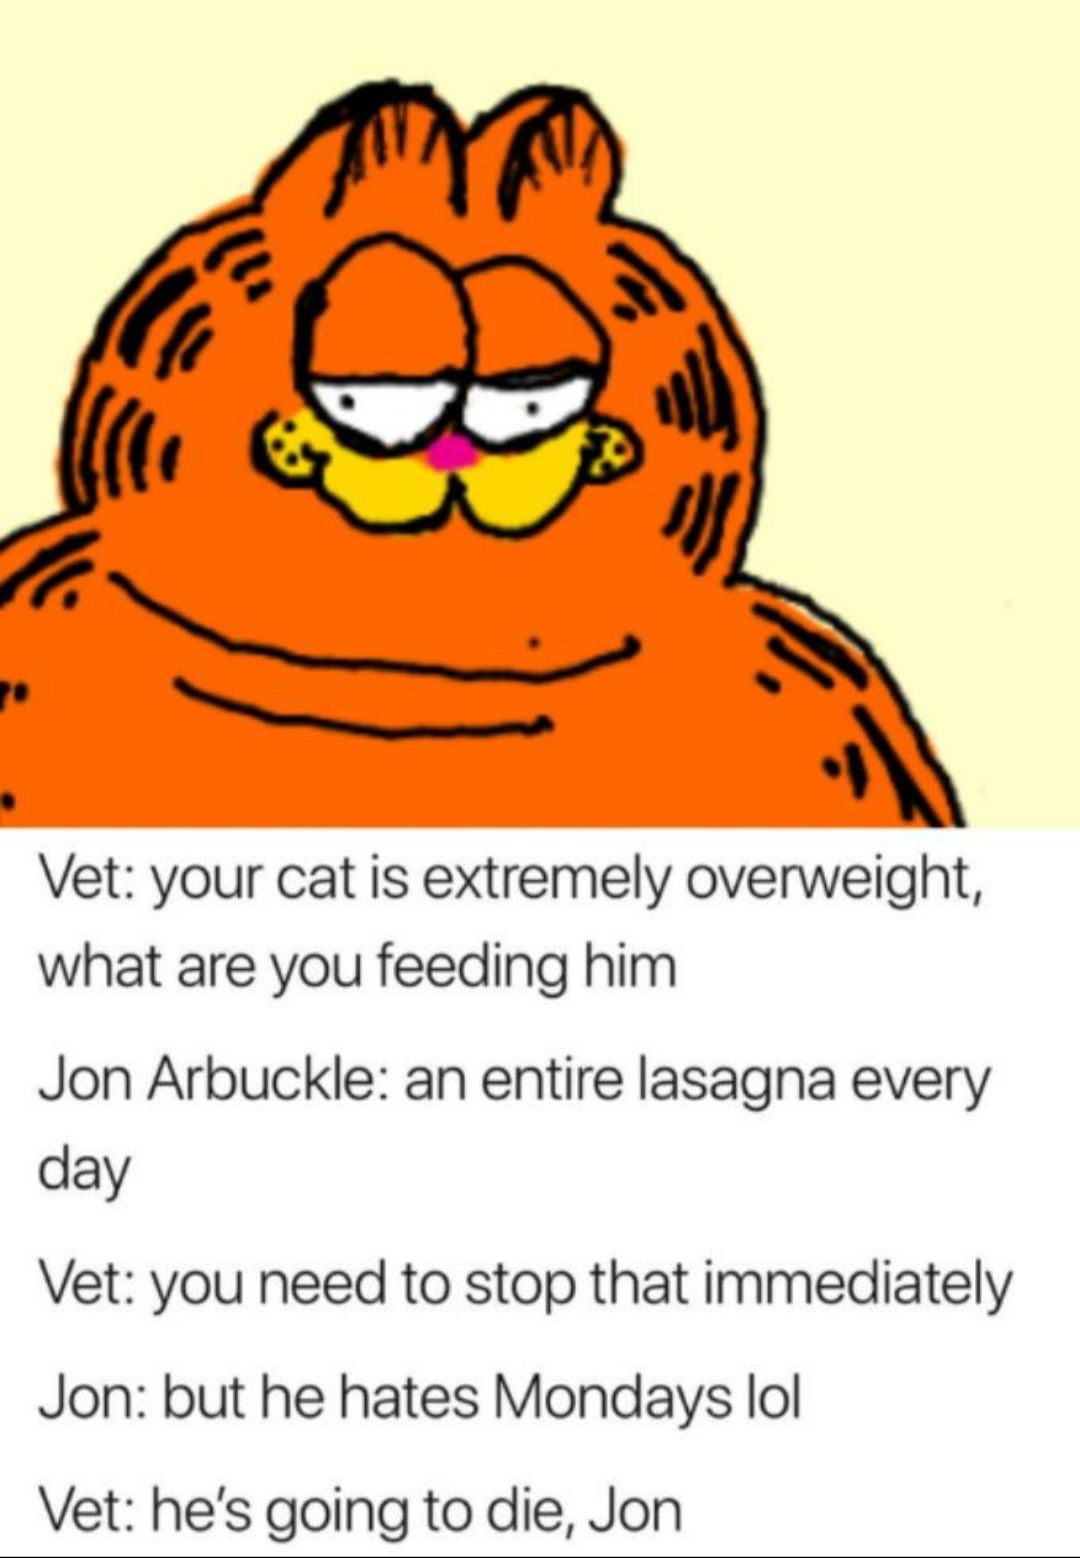 Garfield Veterinarian Jon Arbuckle Your Cat Is Extremely Overweight What Are You Feeding Him An Entire Lasagna Every Day Yo Funny Memes Memes Garfield